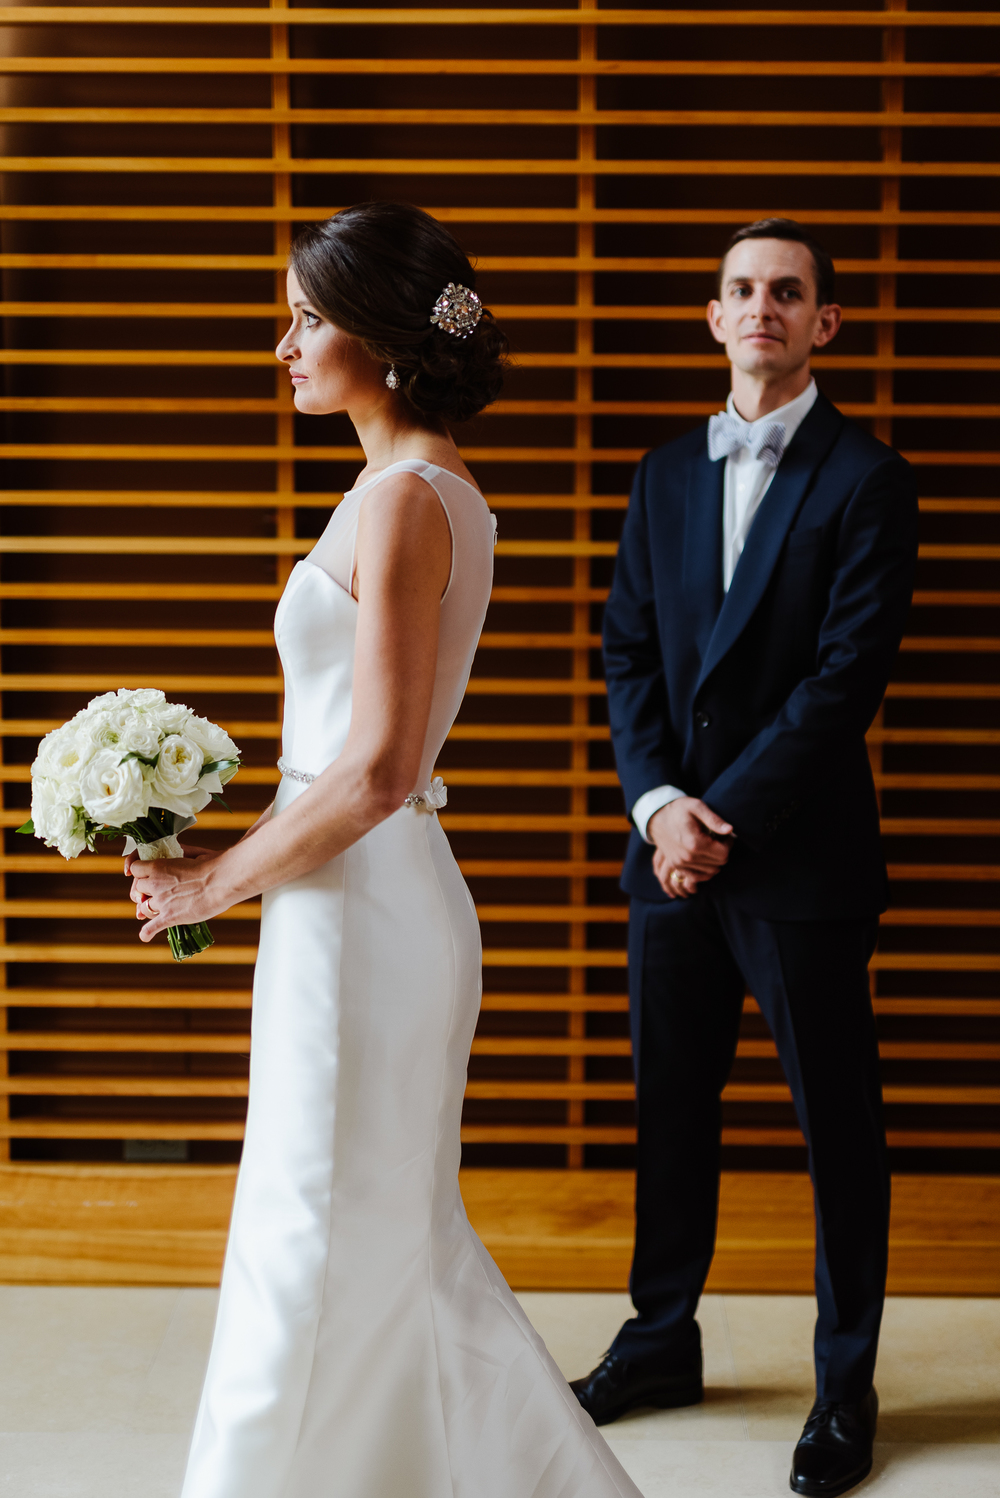 132-J Crew Wedding New Jersey Wedding Photographer J Crew Weddings.jpg